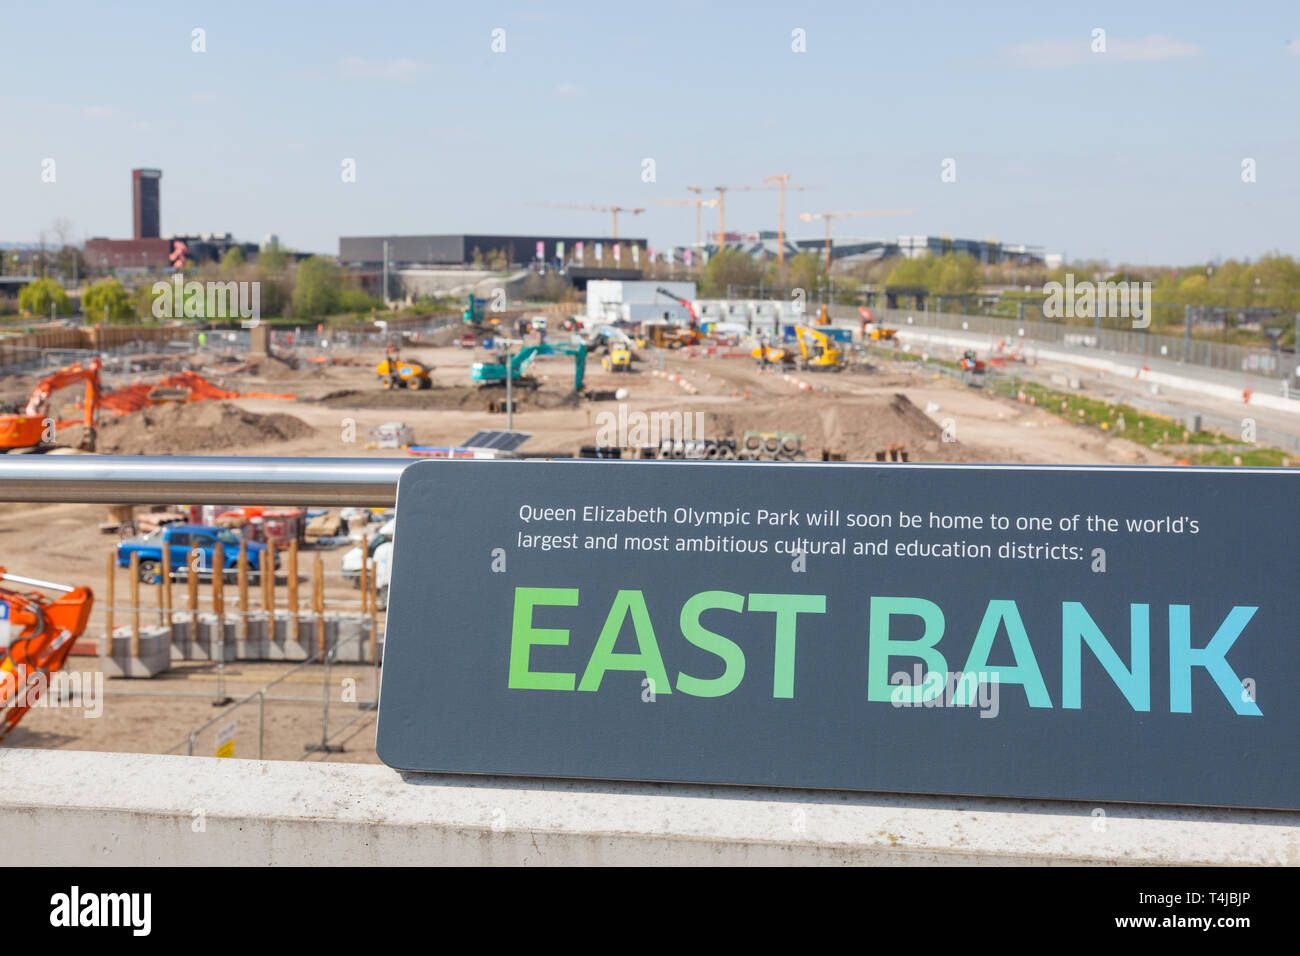 Queen Elizabeth Olympic Park, East Bank educational district under construction, Stratford, London, England, United Kingdom. Stock Photo